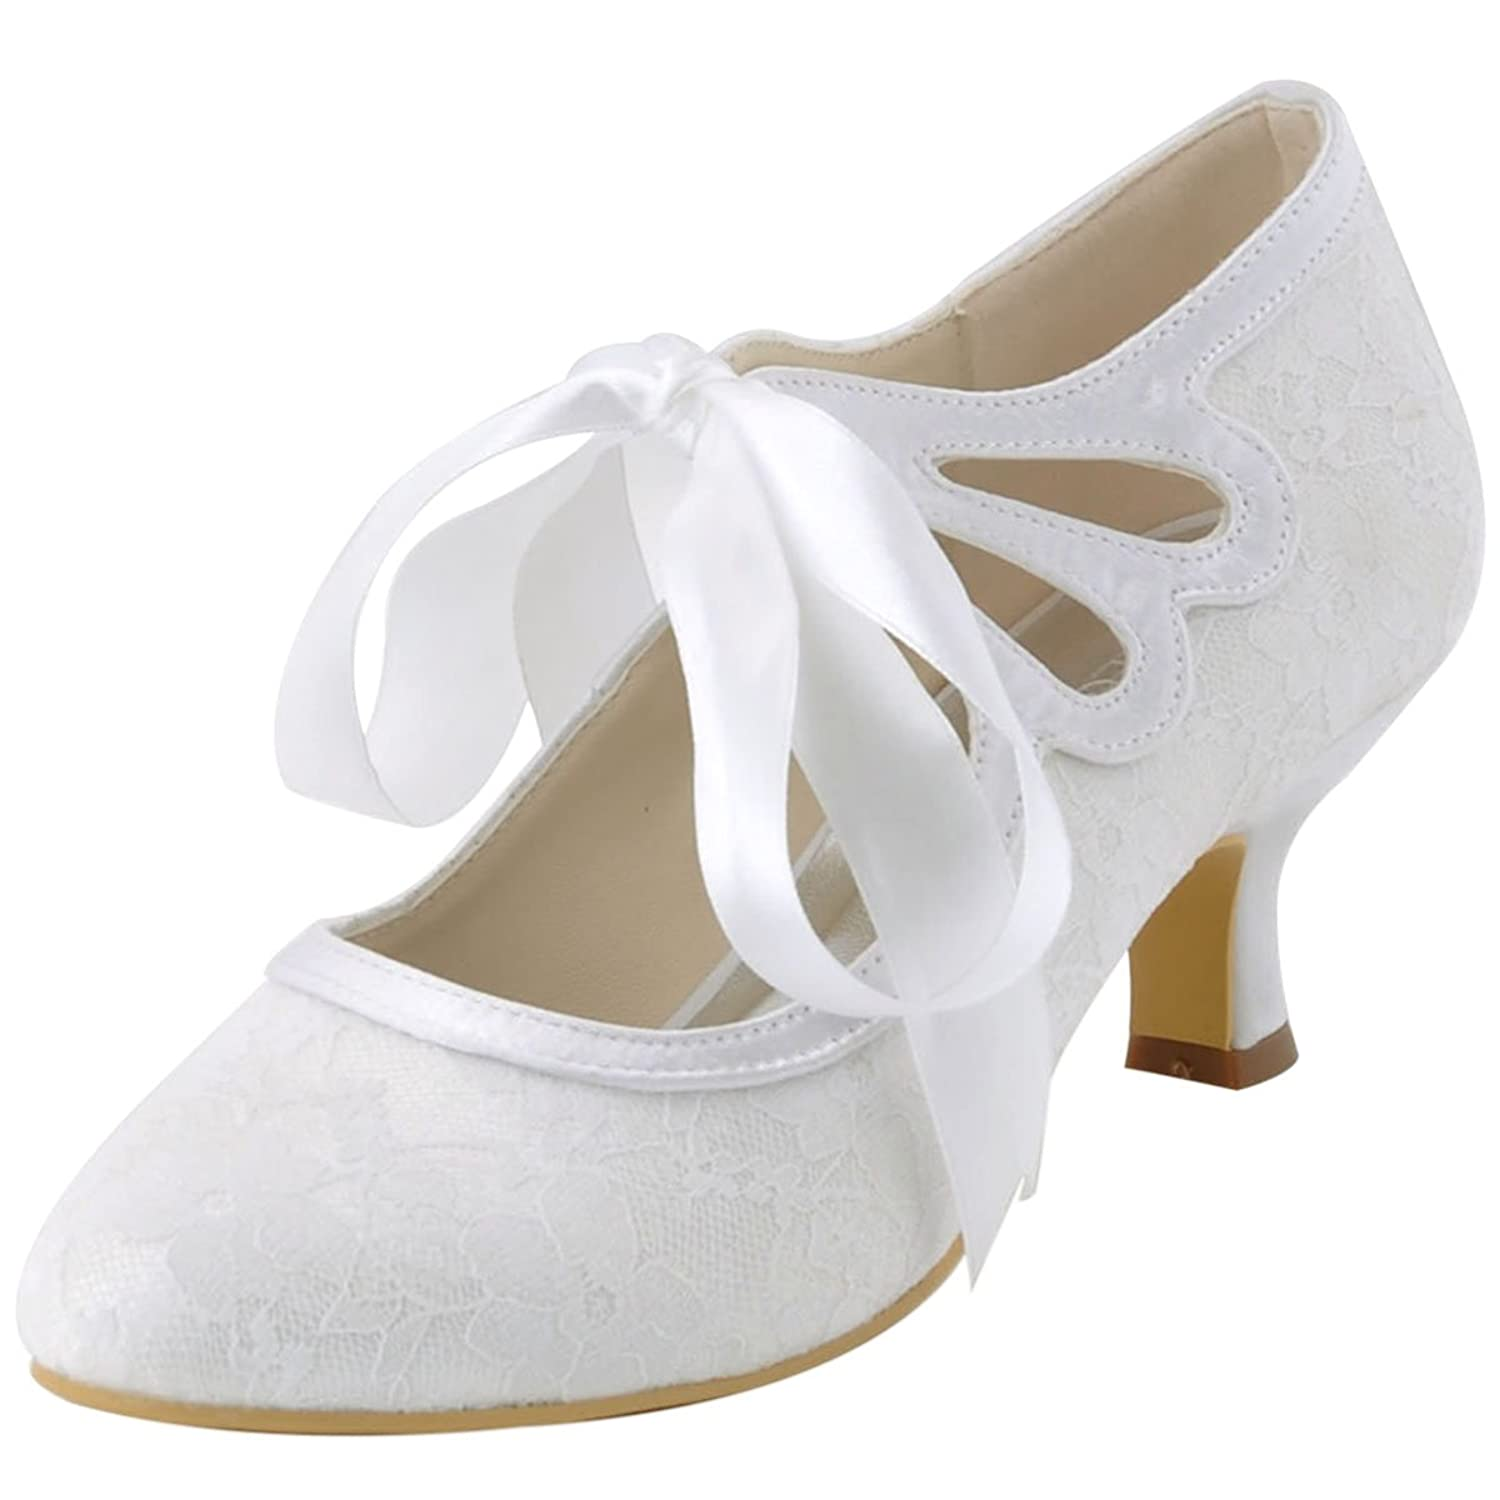 1960s Inspired Fashion: Recreate the Look ElegantPark HC1521 Womens Mary Jane Closed Toe Low Heel Pumps Lace Wedding Dress Shoes $48.95 AT vintagedancer.com